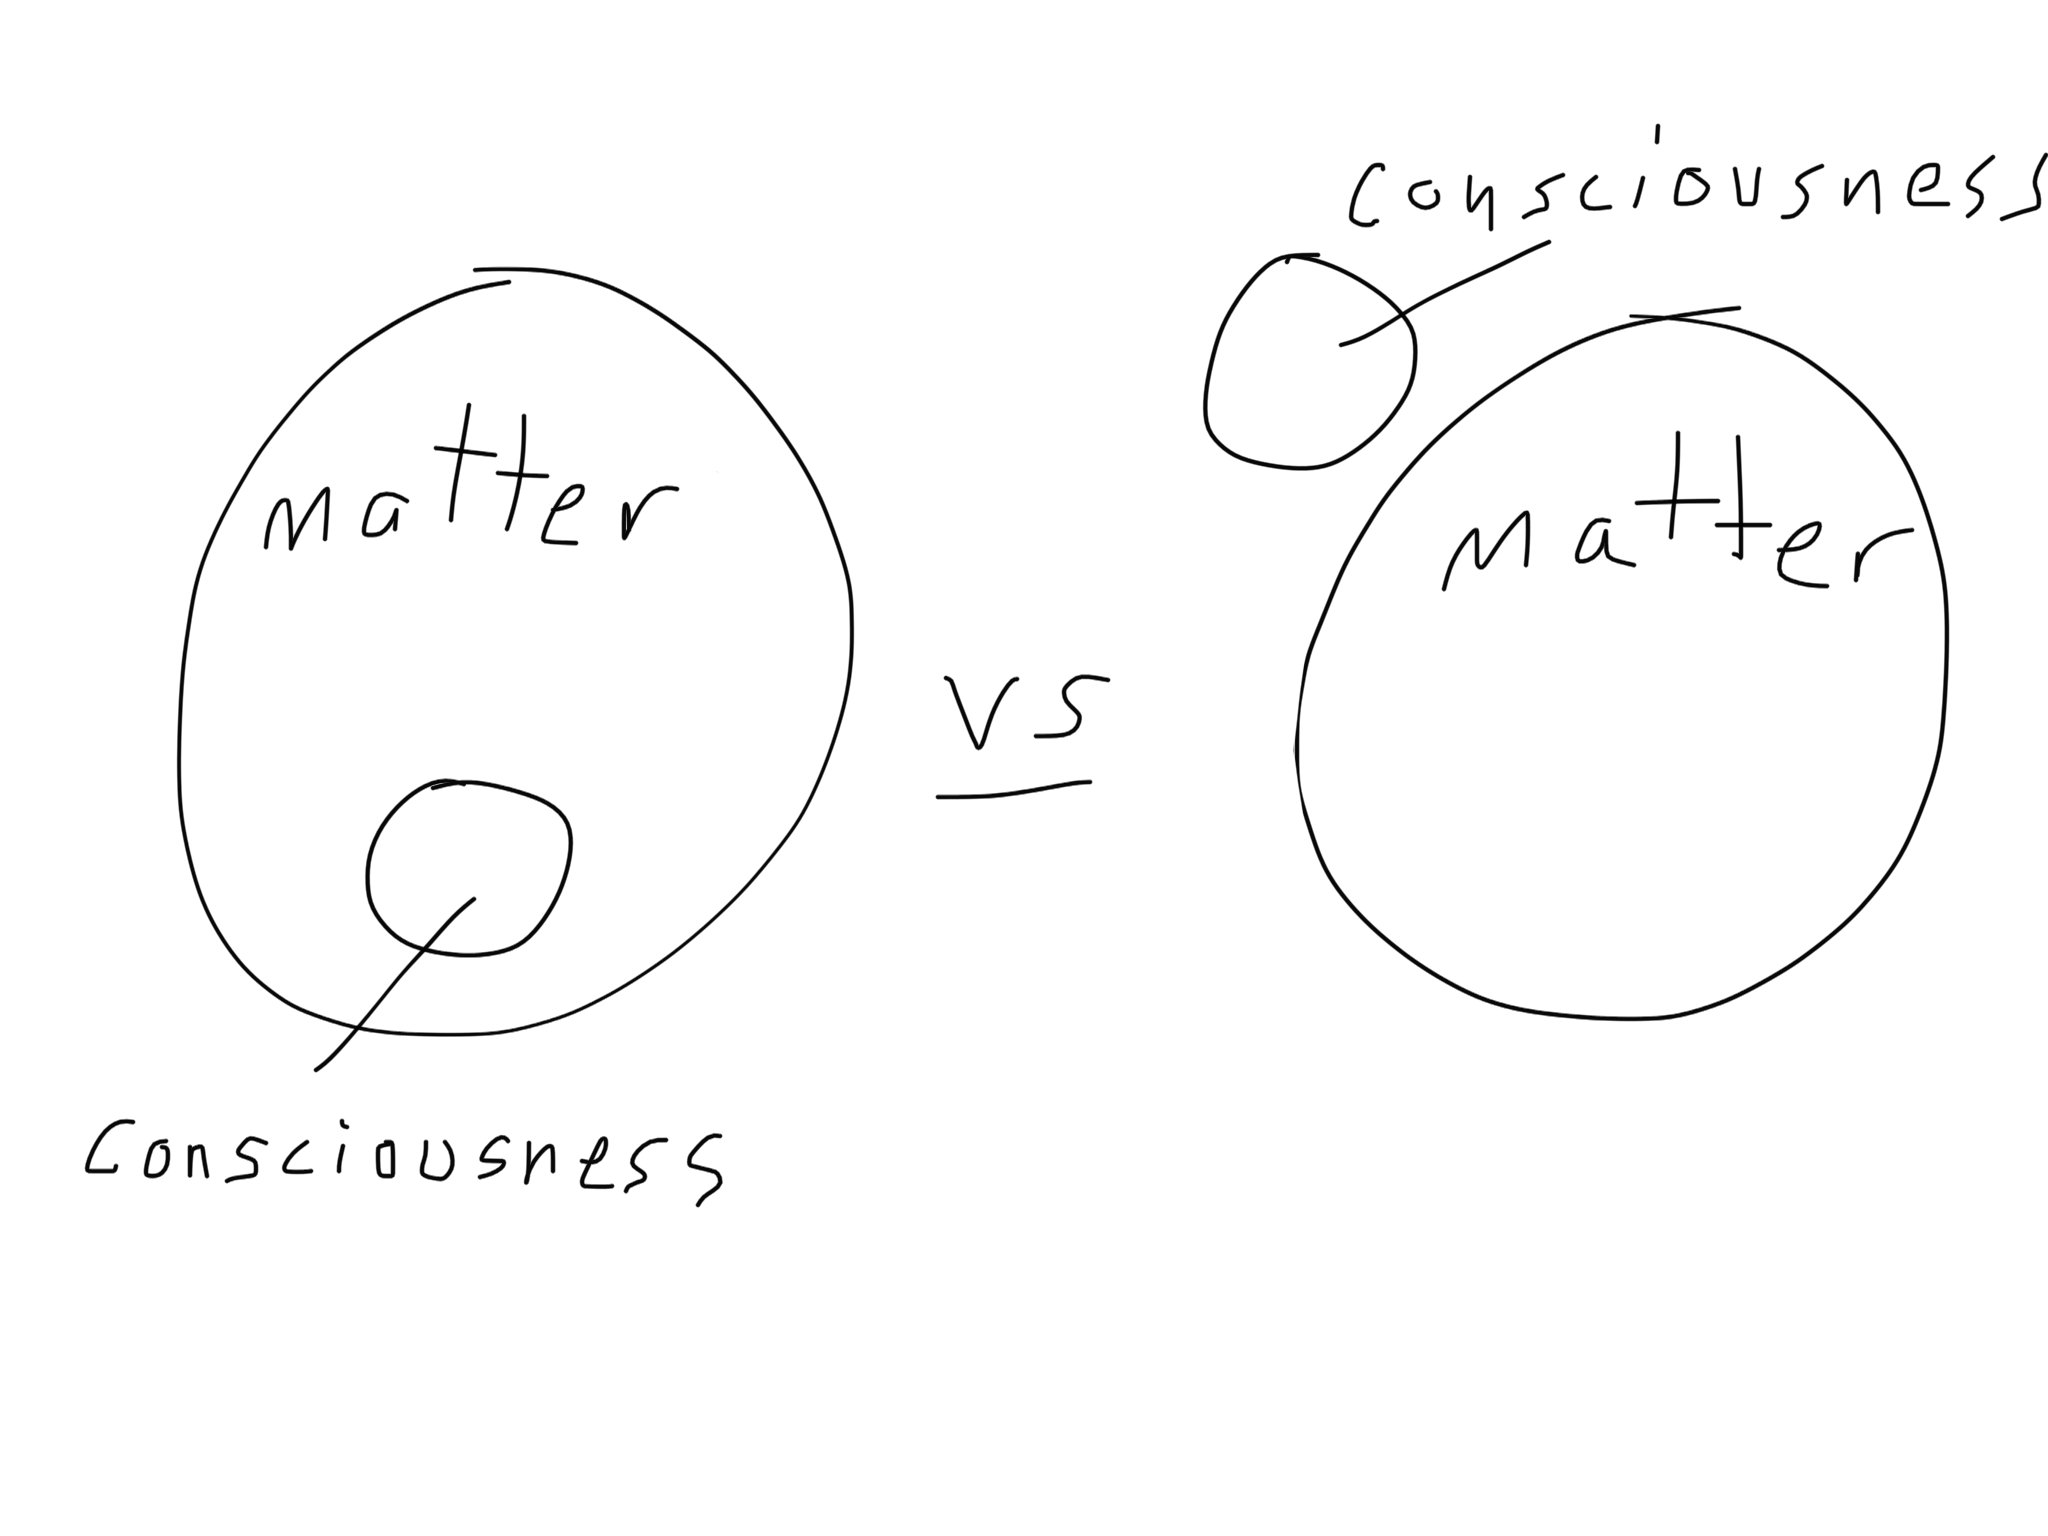 Is consciousness matter? How the f*ck can that even be? How could it NOT be?!